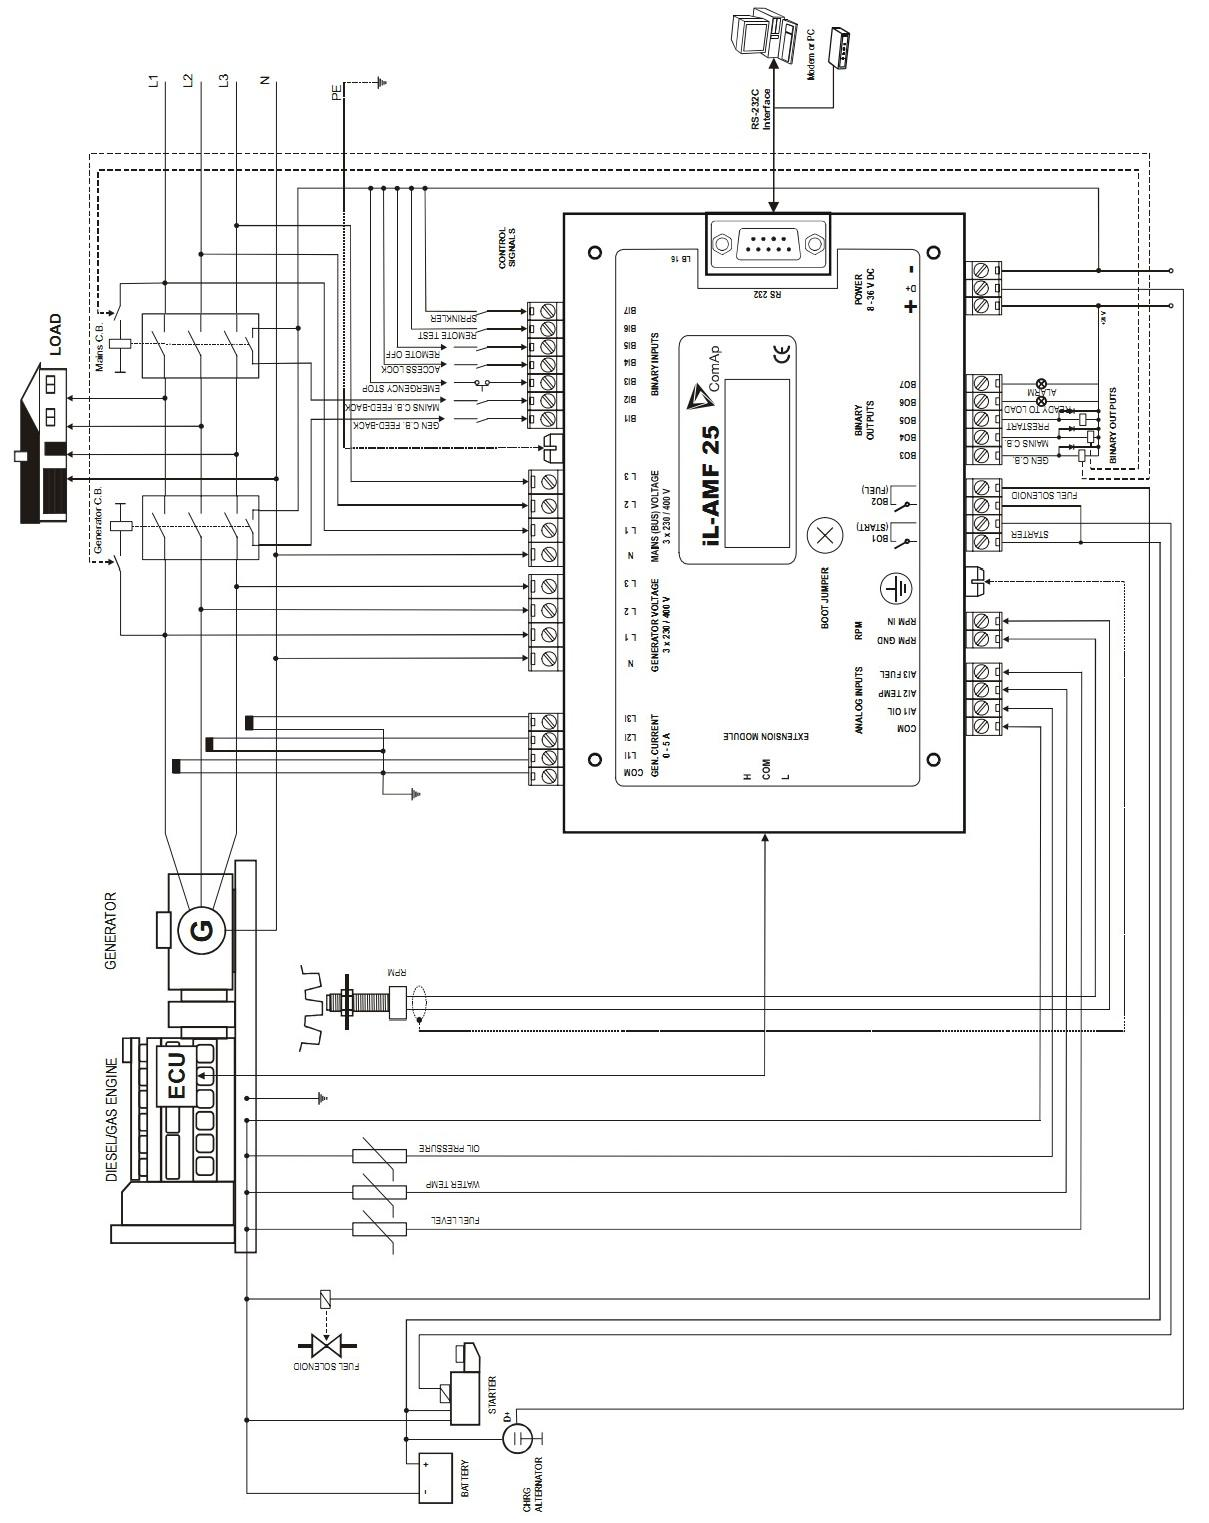 diagram dse 7320 wiring diagram full version hd quality. Black Bedroom Furniture Sets. Home Design Ideas